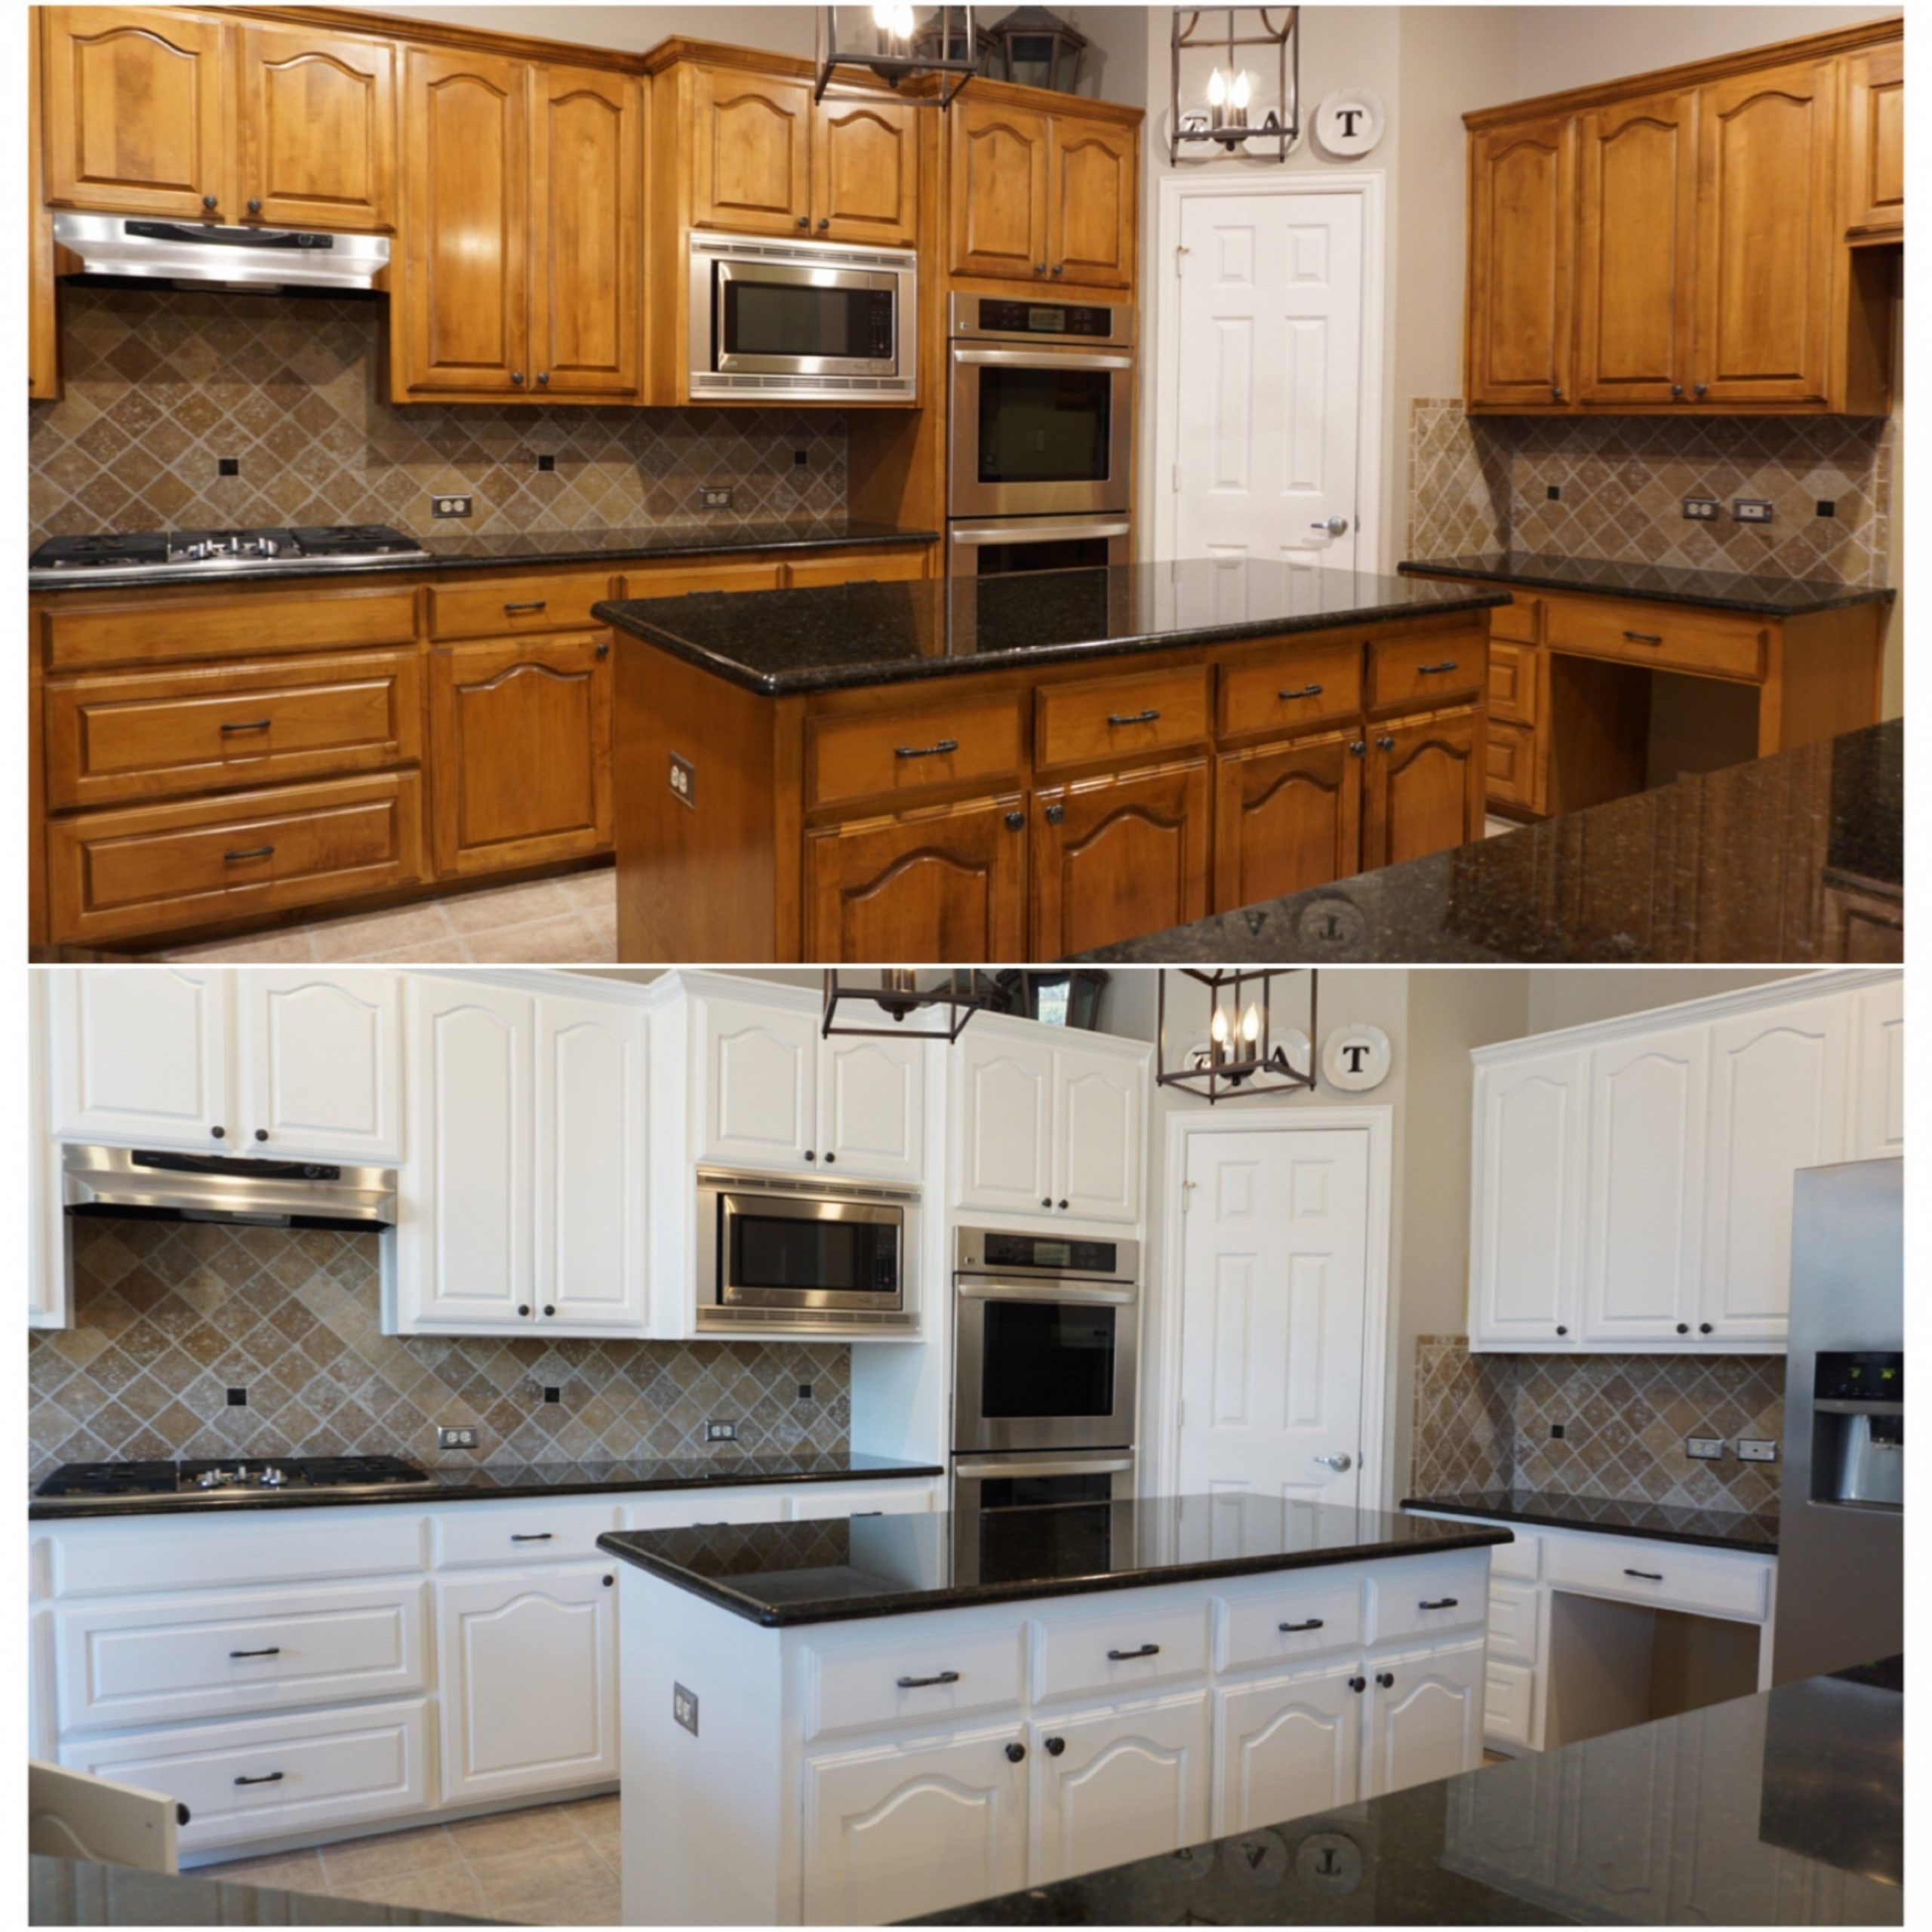 Painting White Kitchen Cabinets To Look Like Wood In 2020 Painting Kitchen Cabinets White Repainting Kitchen Cabinets Painting Kitchen Cabinets